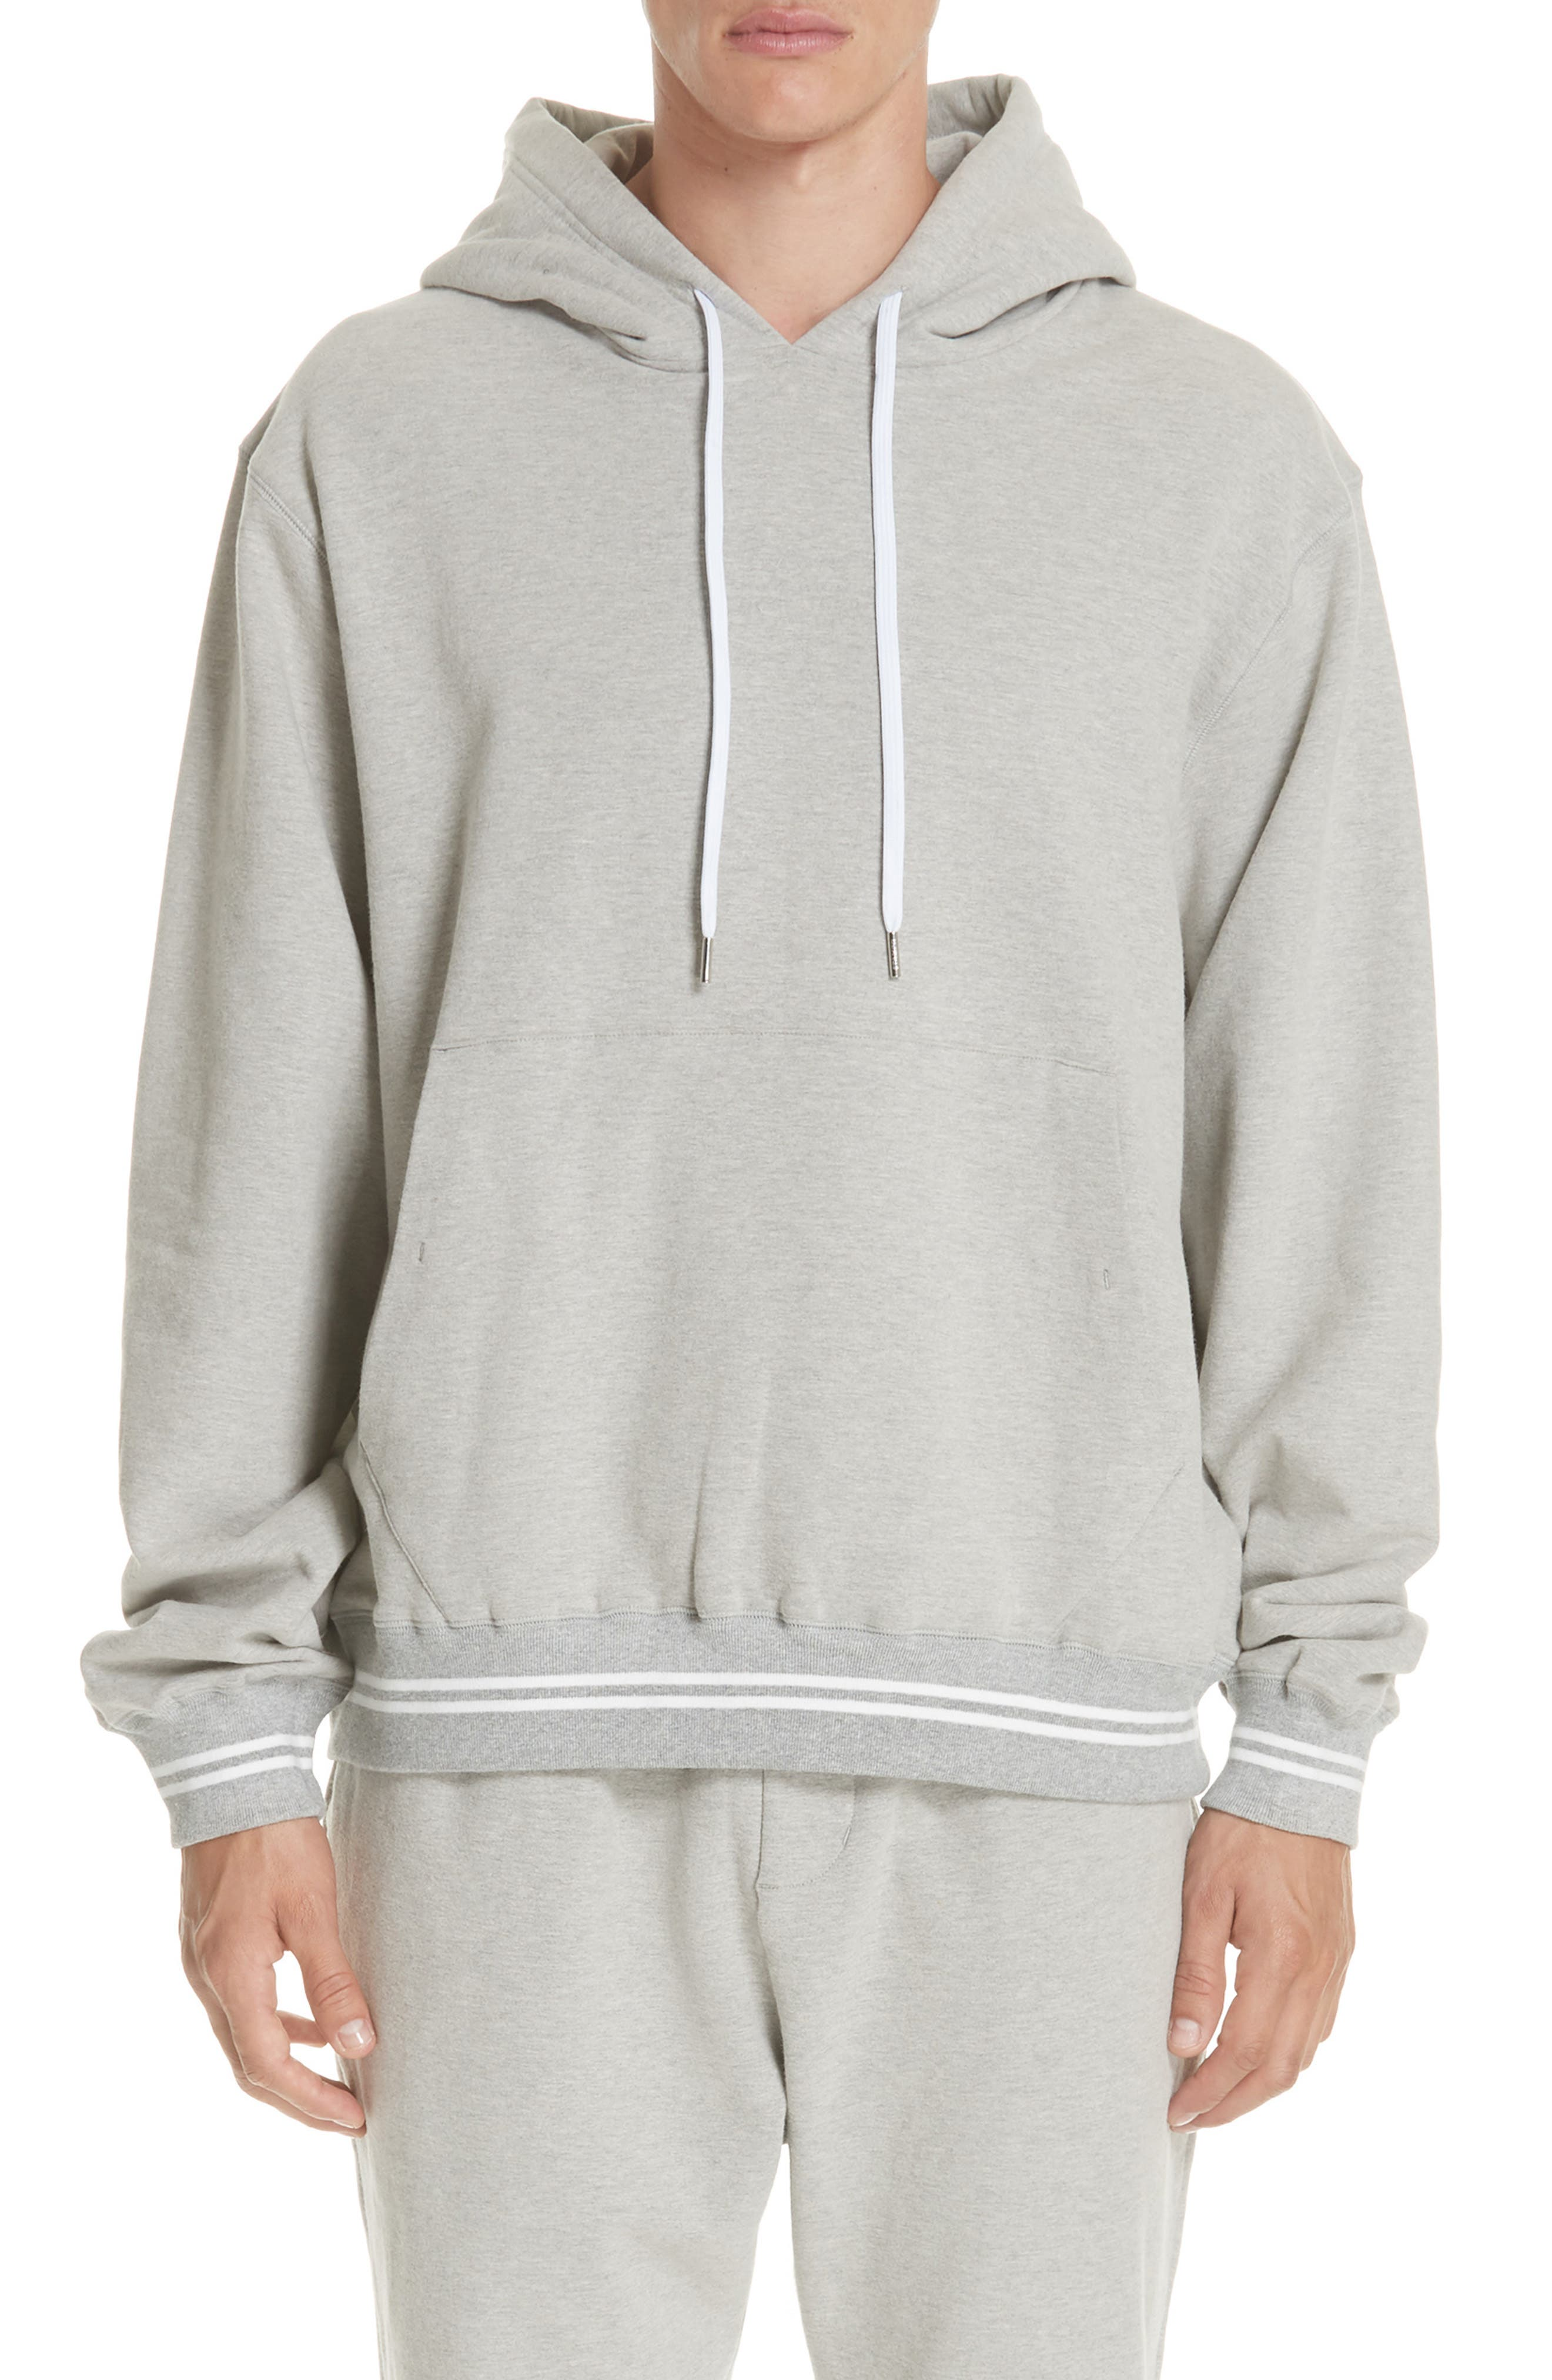 STAMPD Oversize Hoodie in Heather Grey